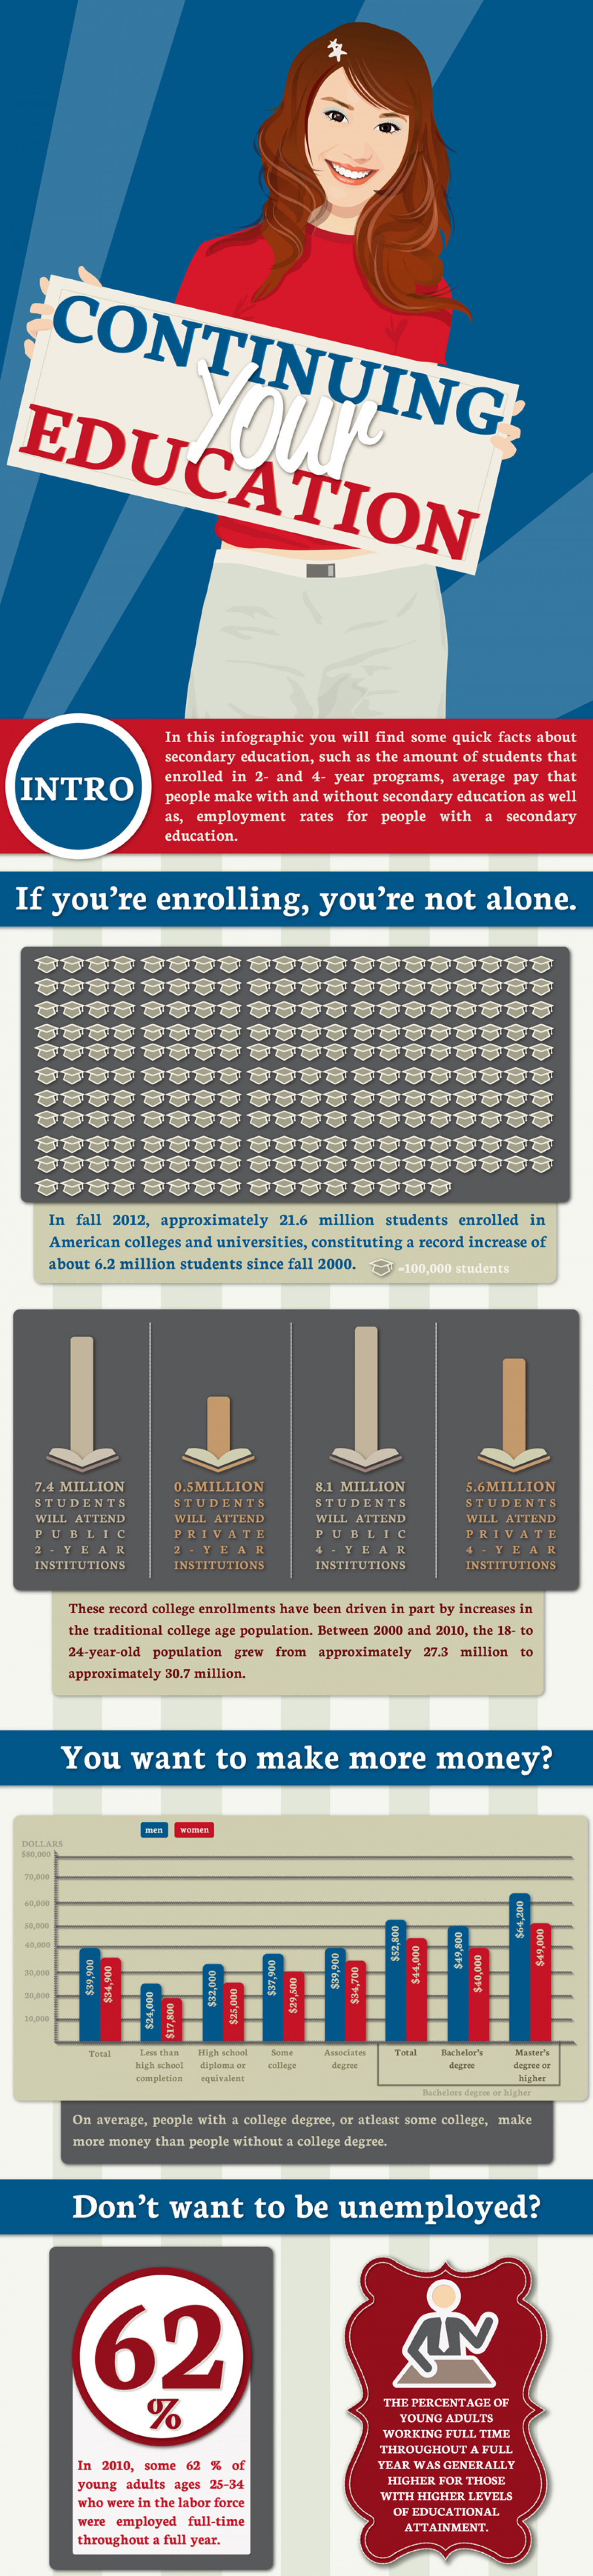 Continue your Education Infographic